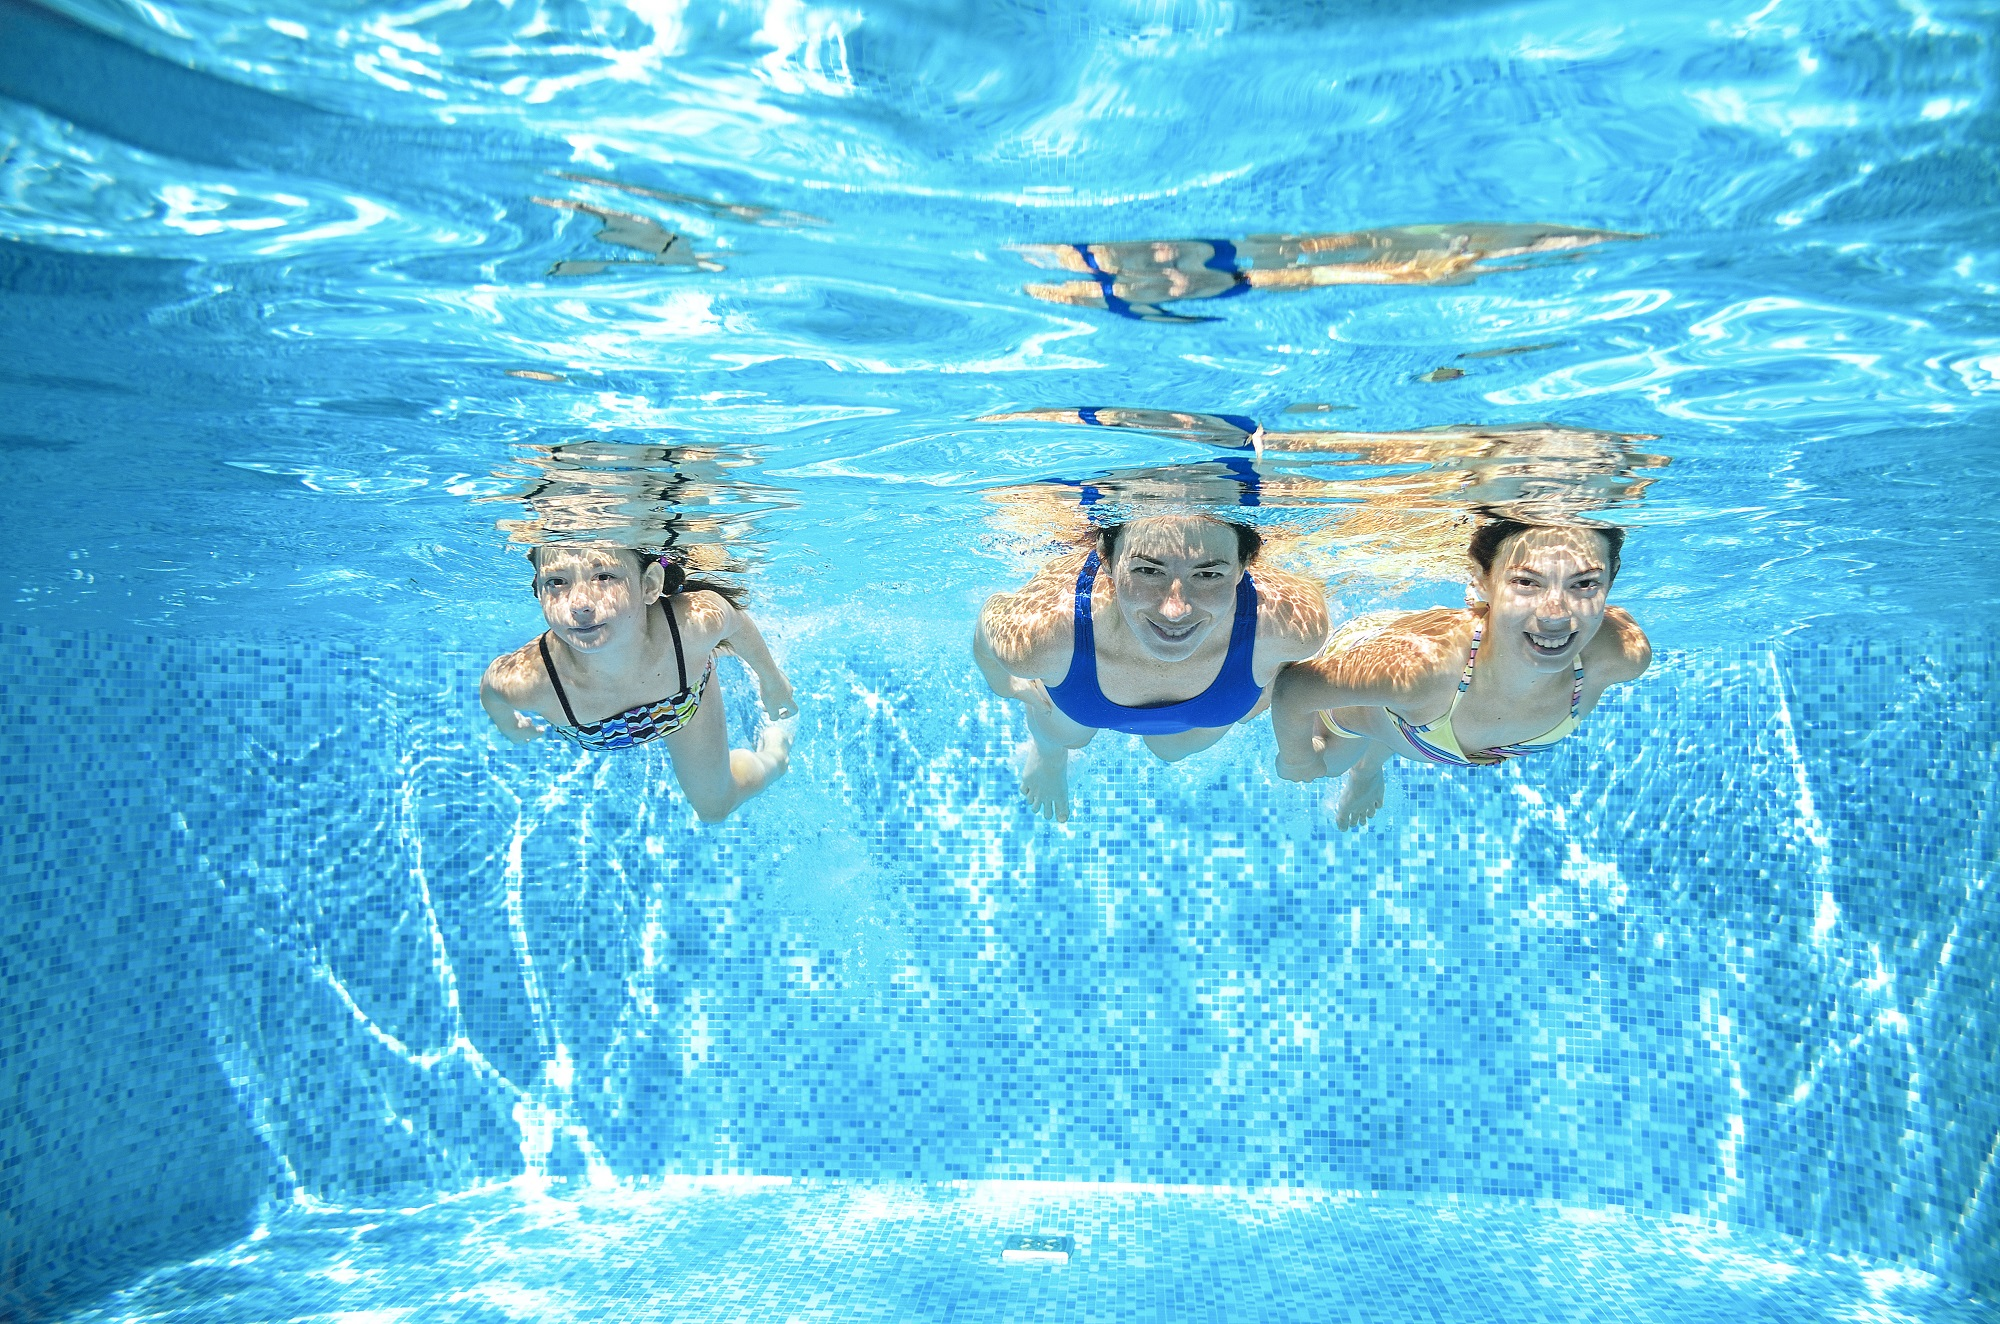 Pool Safety and Drowning Prevention Tips on avanteinsurance.com